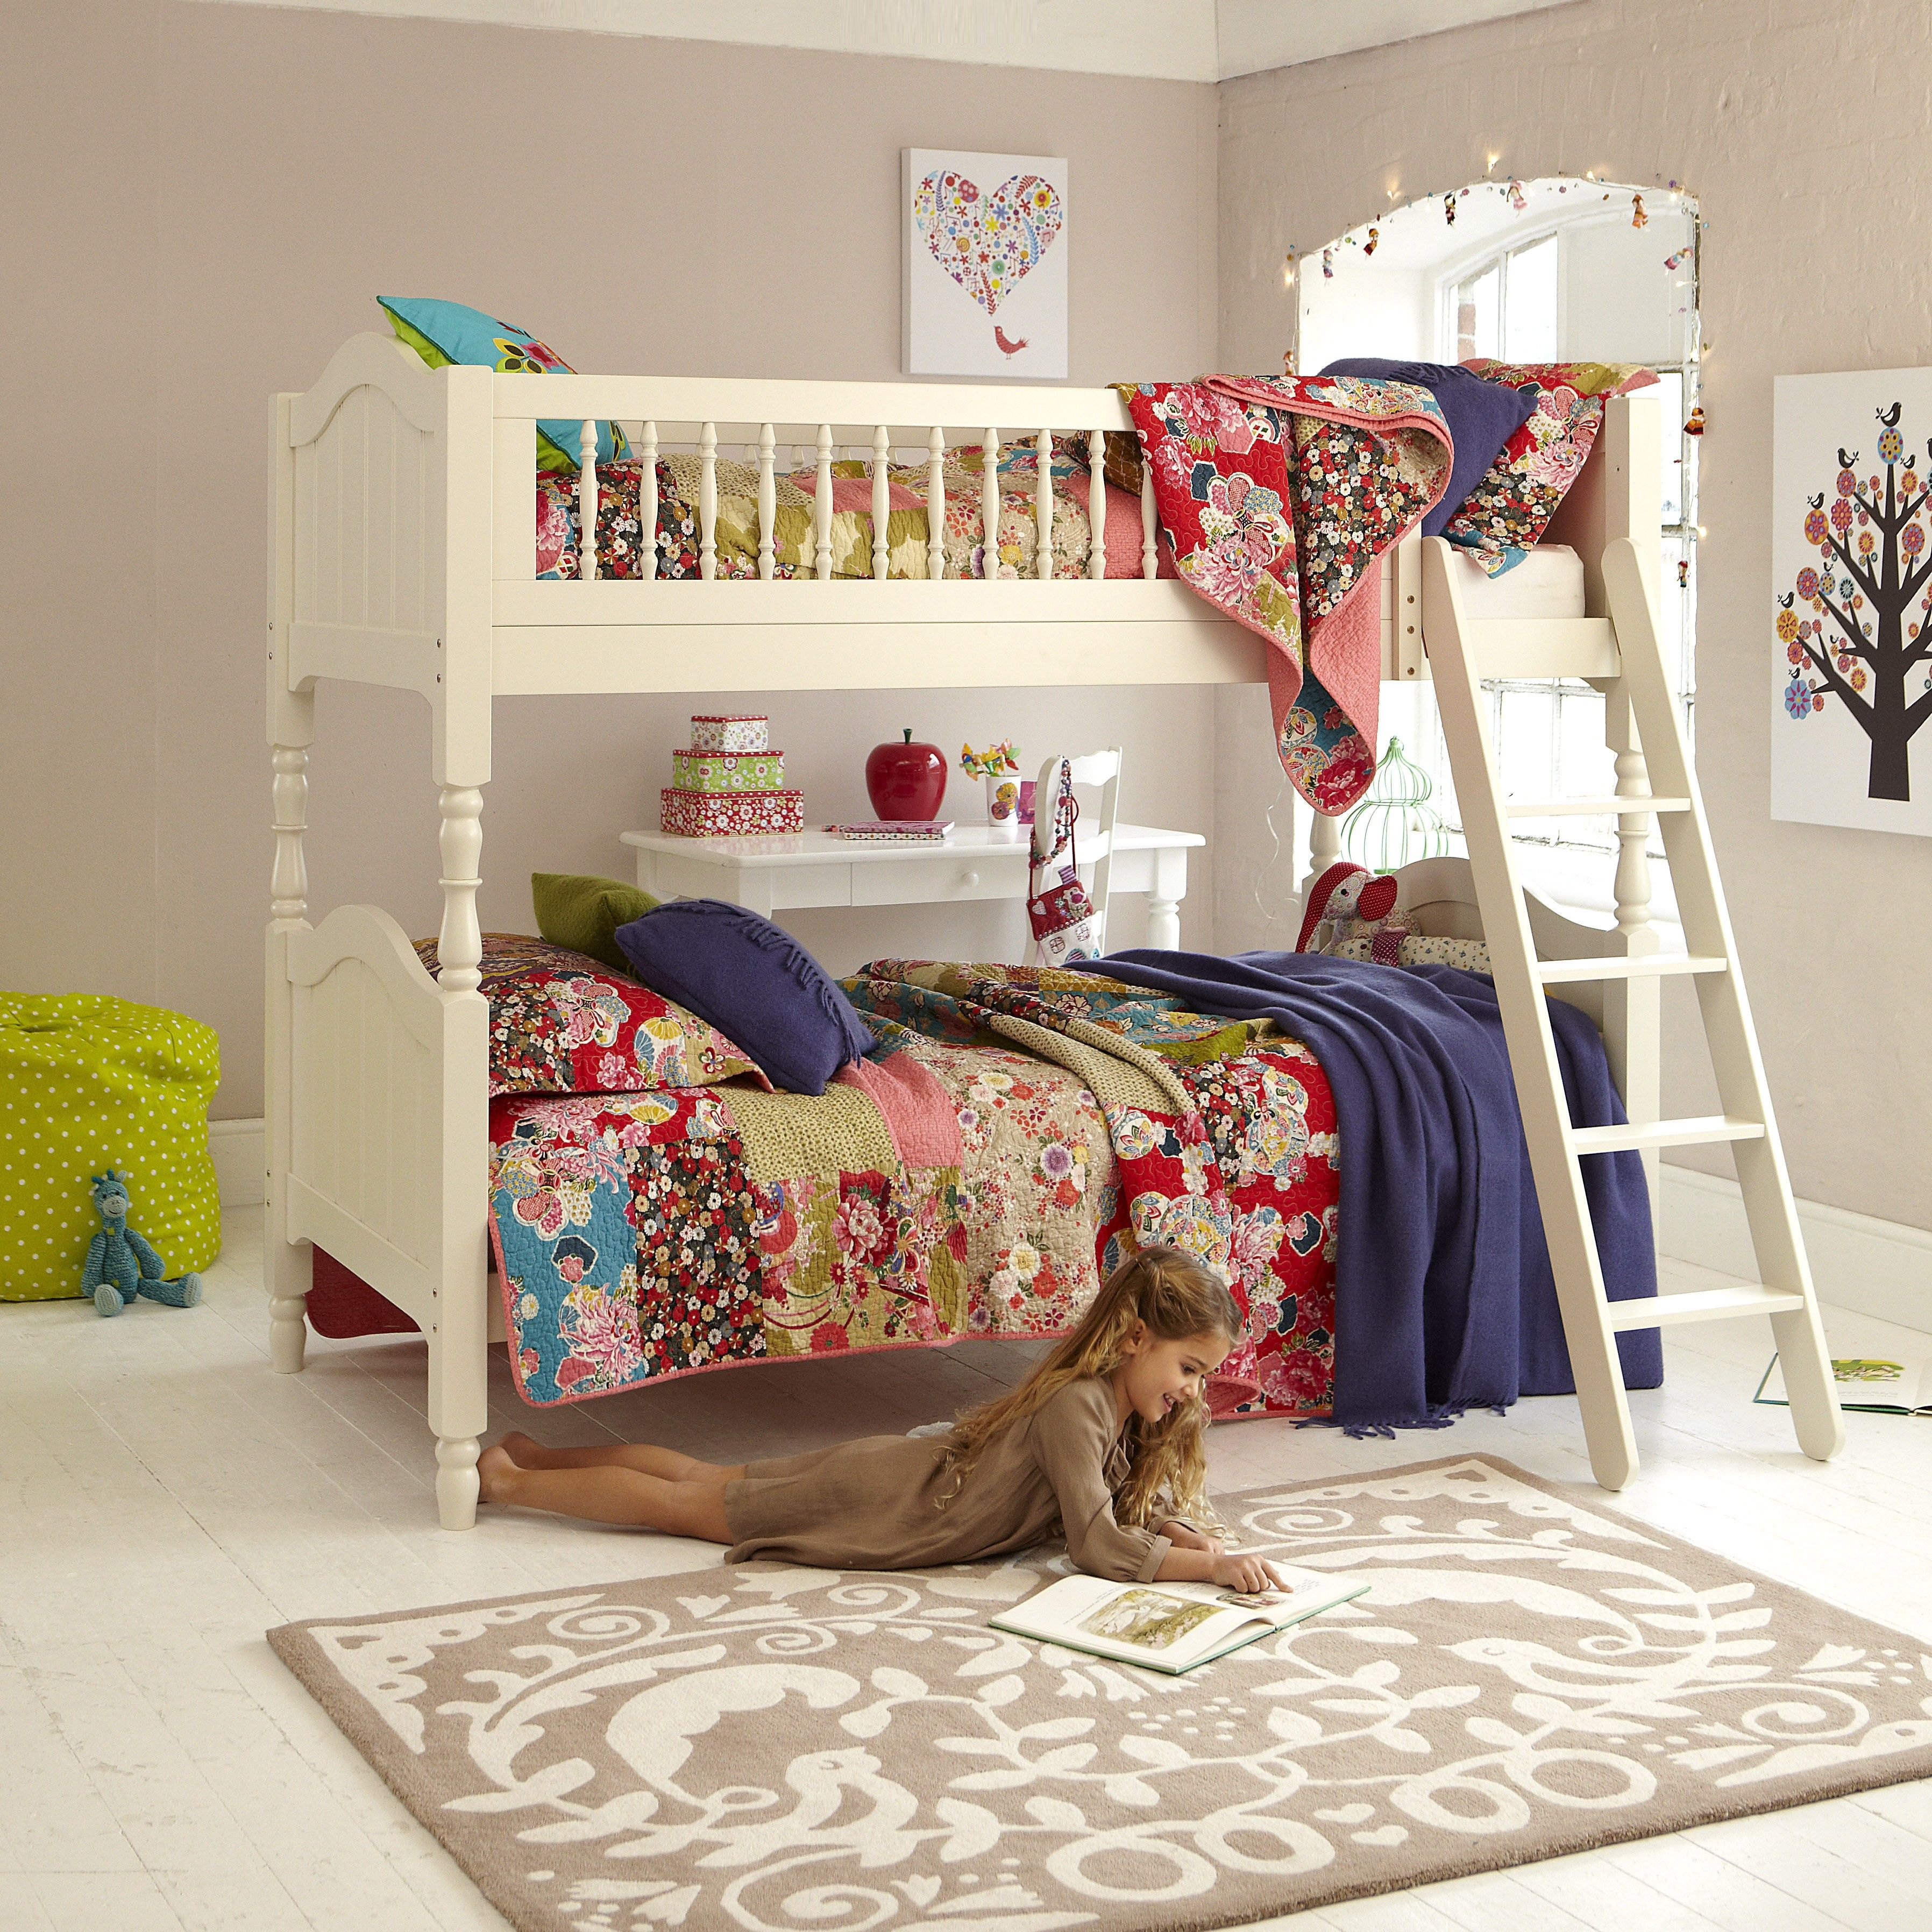 Off White Wooden Aspace Bunks Splits Into 2 Separate Beds Also The Lovely Bedding Bunk Beds